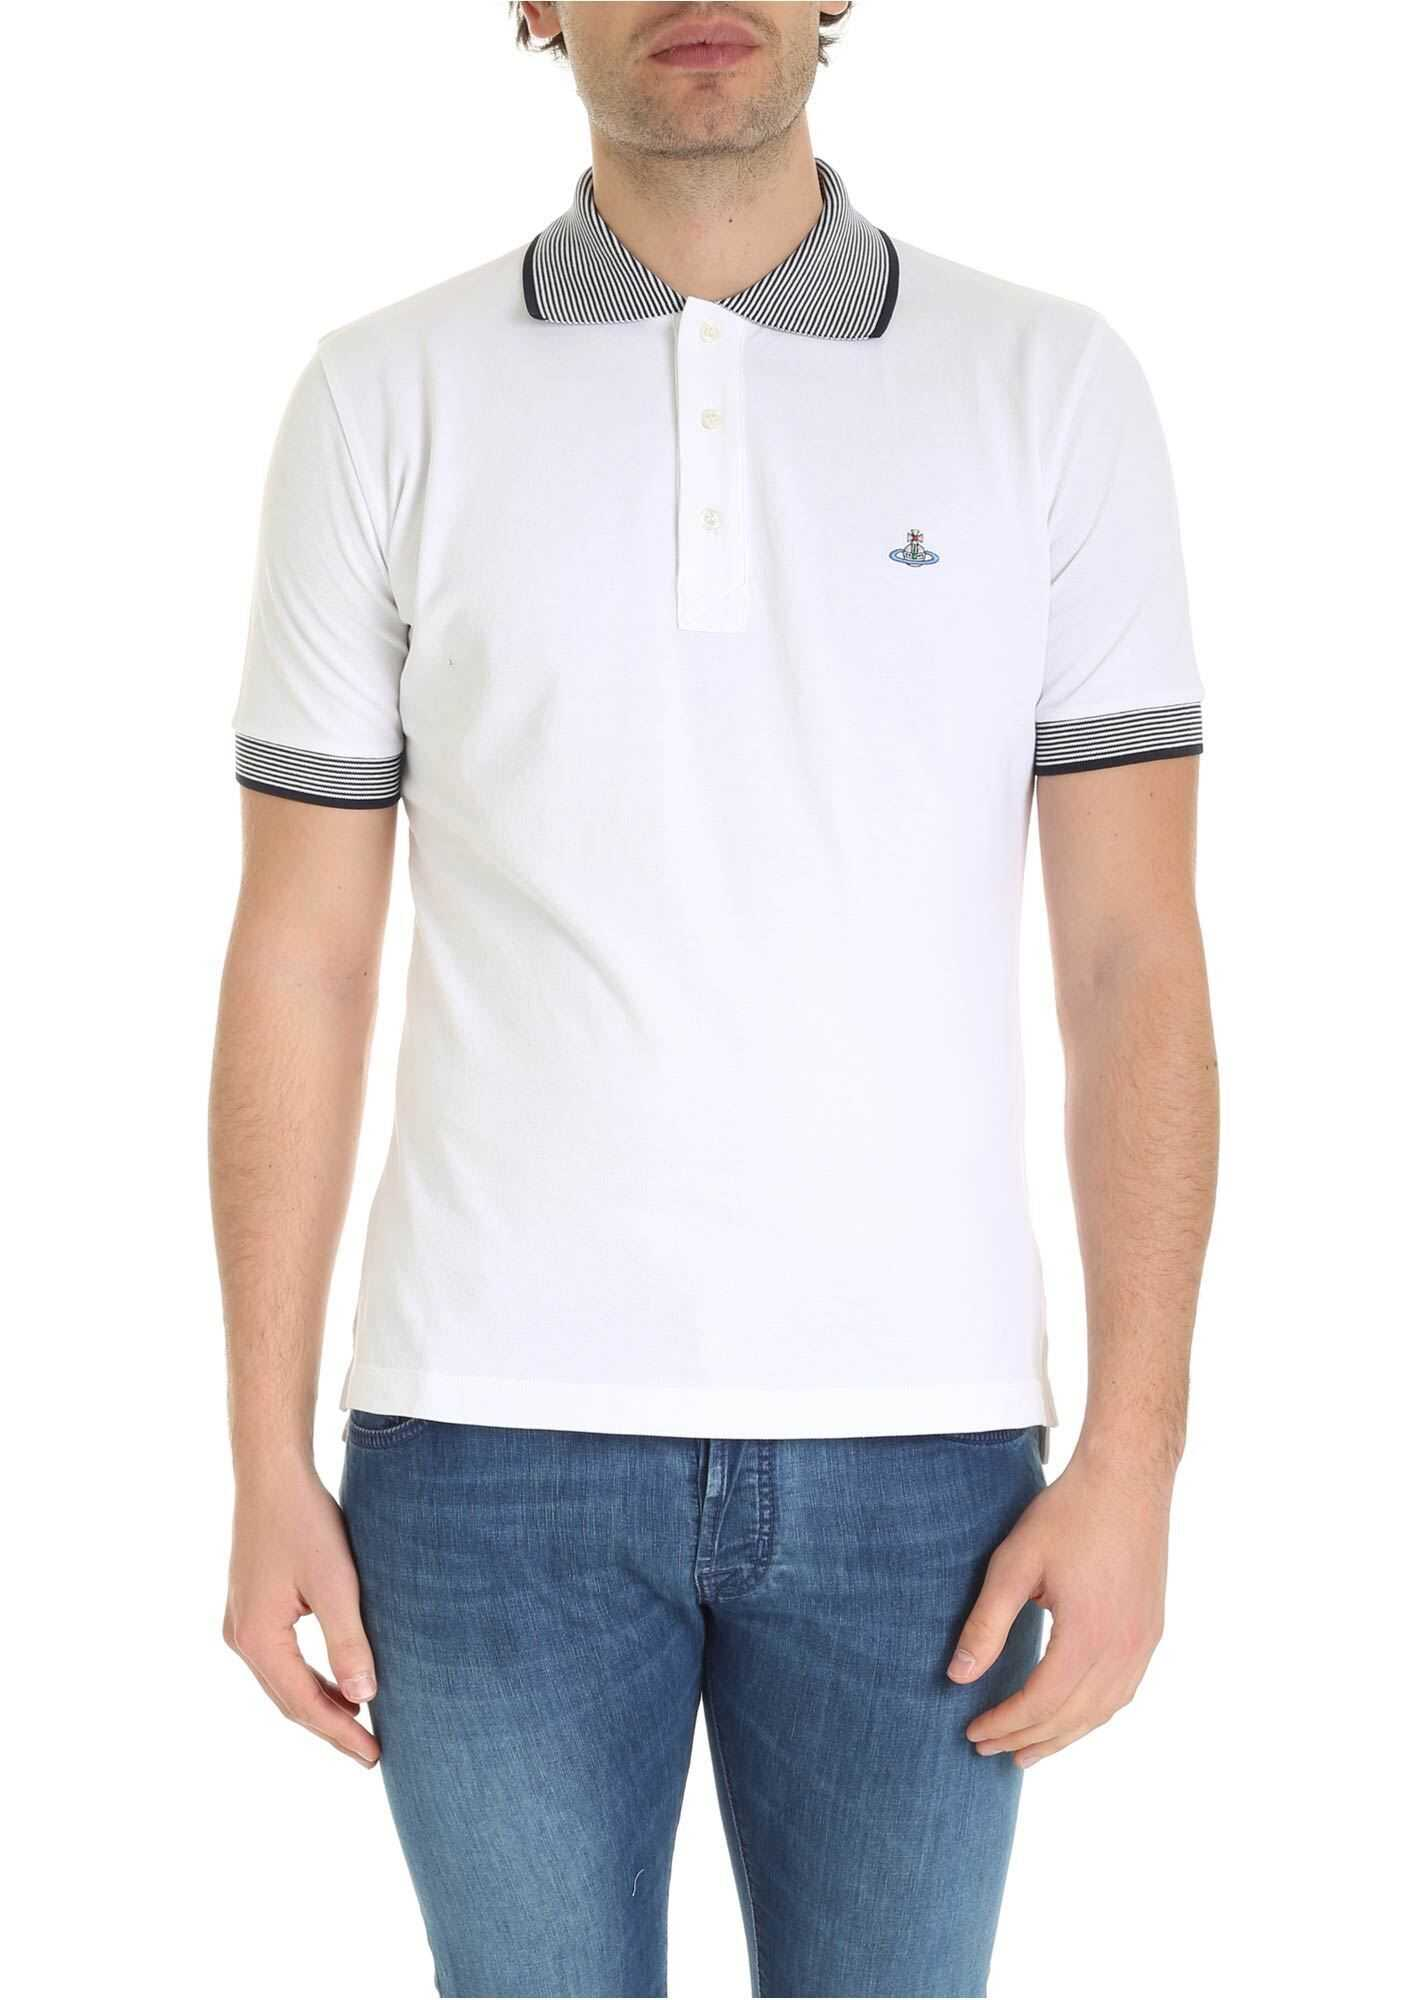 Vivienne Westwood Orb Logo Embroidery Polo Shirt In White White